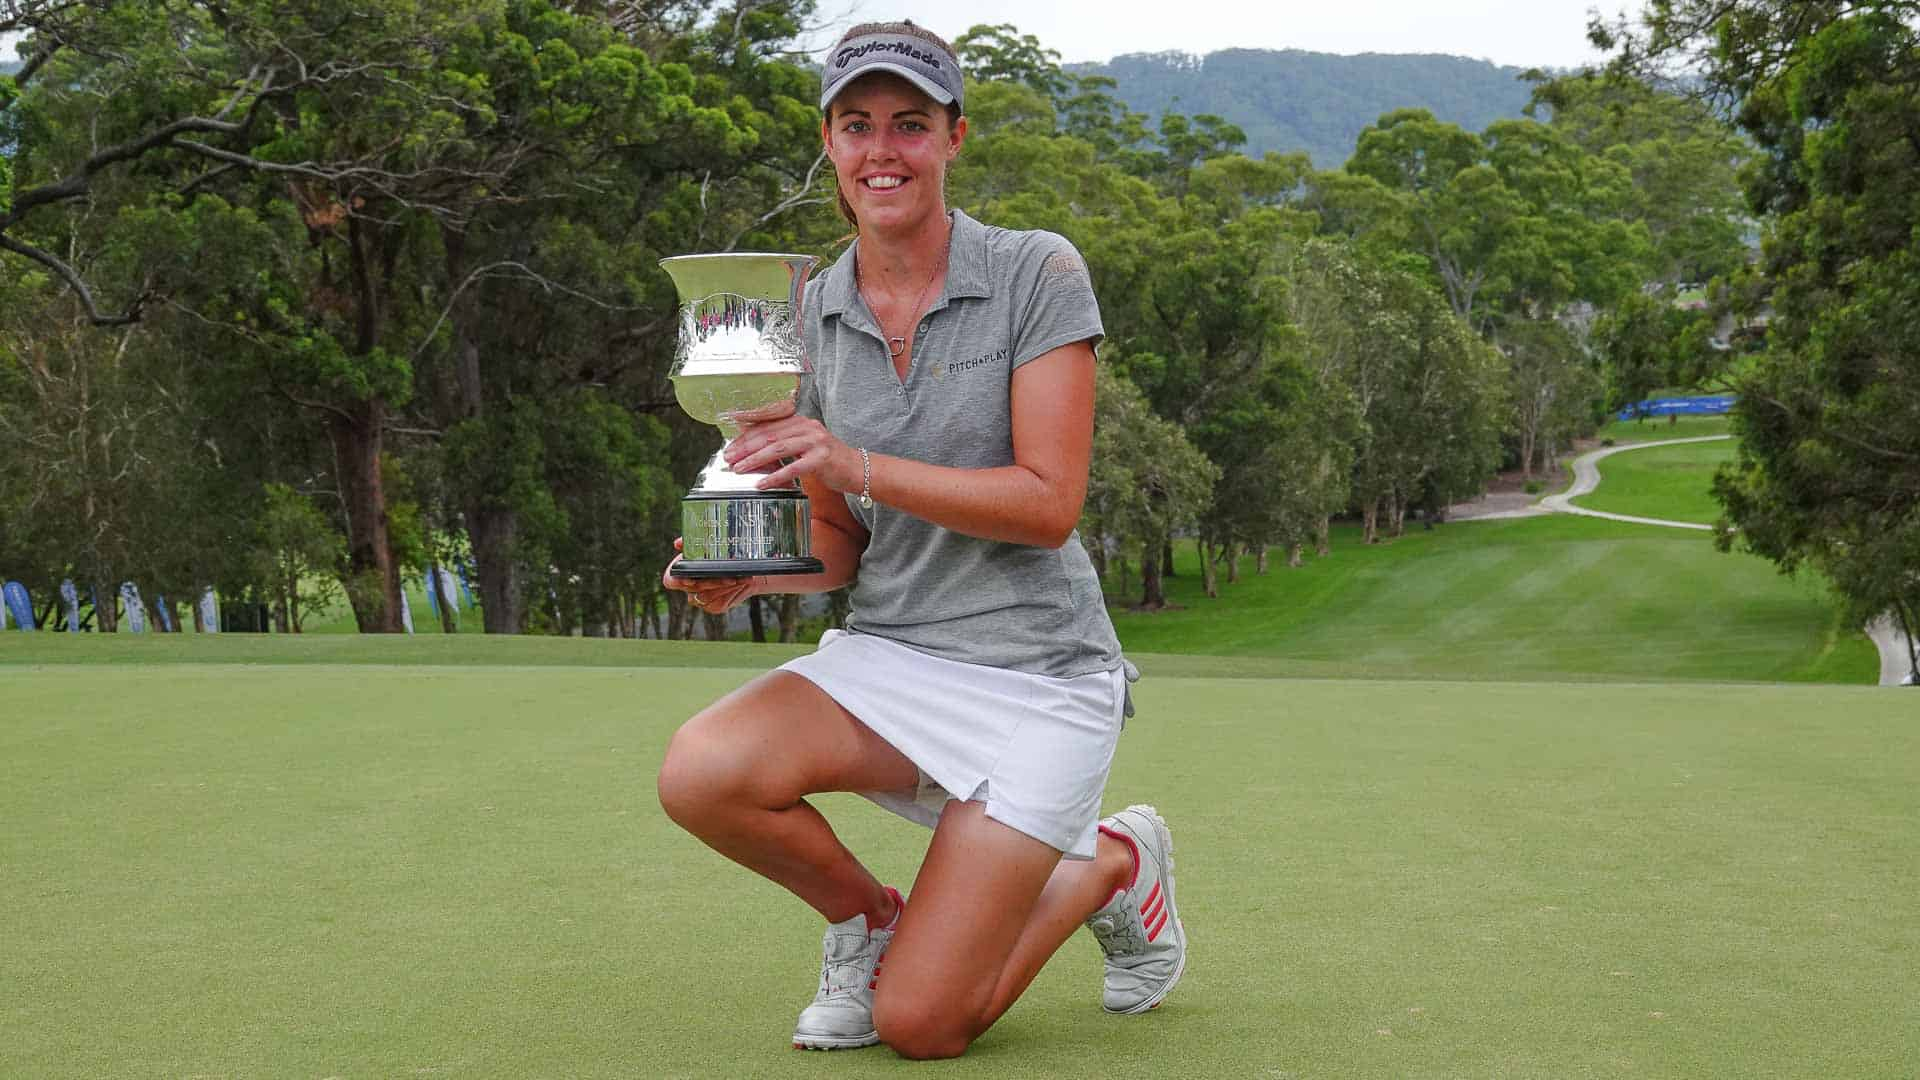 MacLaren Claims Women's Open Crown